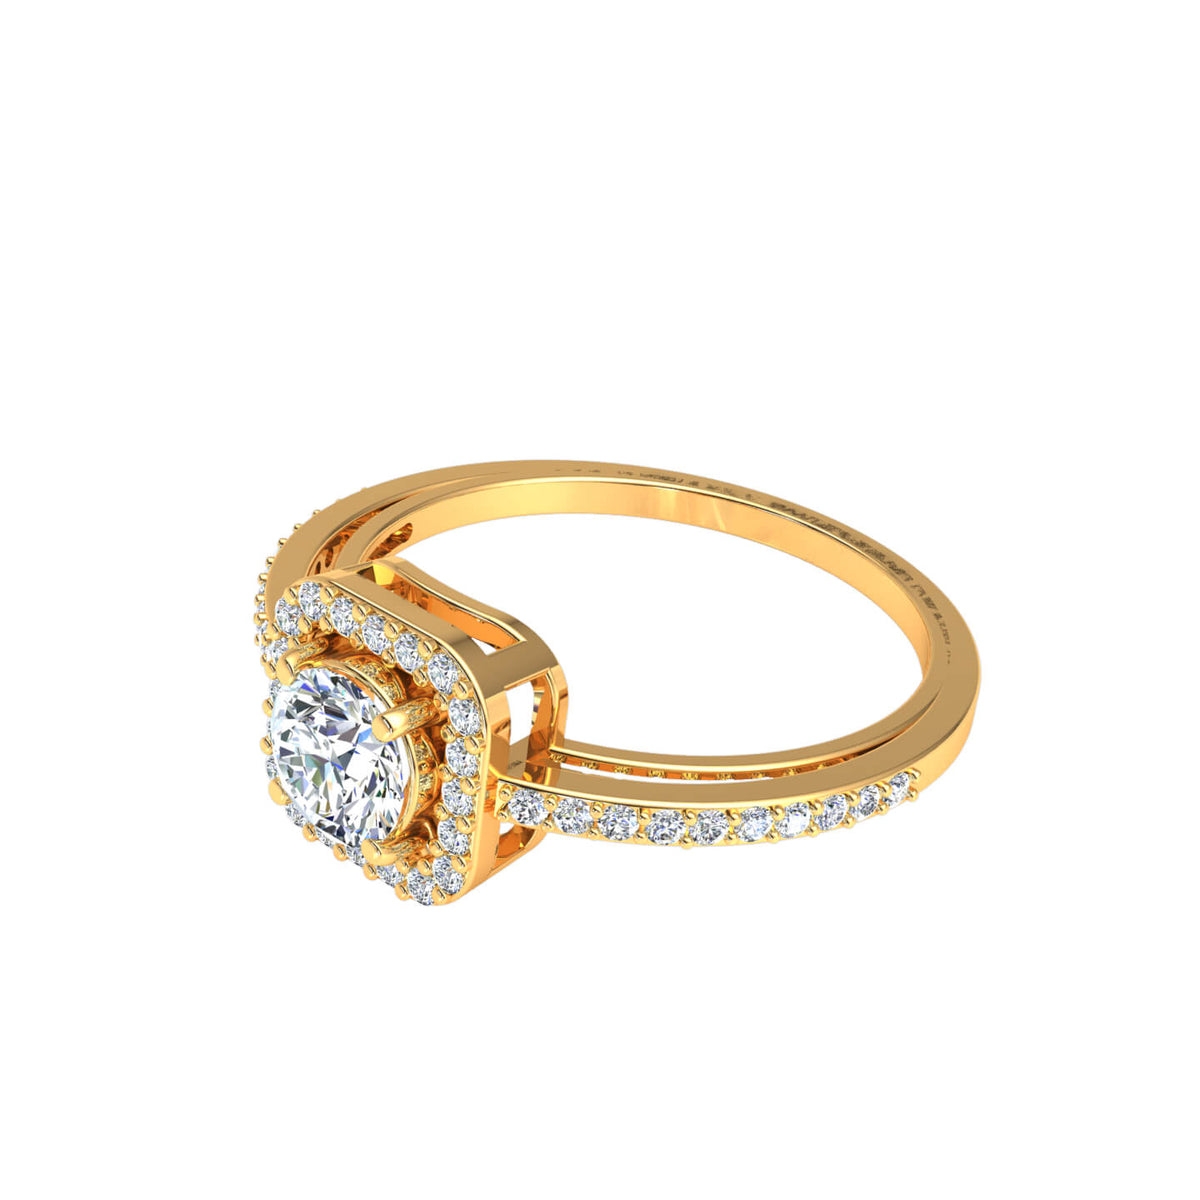 0.75 Ct Round FG VS Diamond Halo Solitaire Engagement Ring For Women 14k Gold